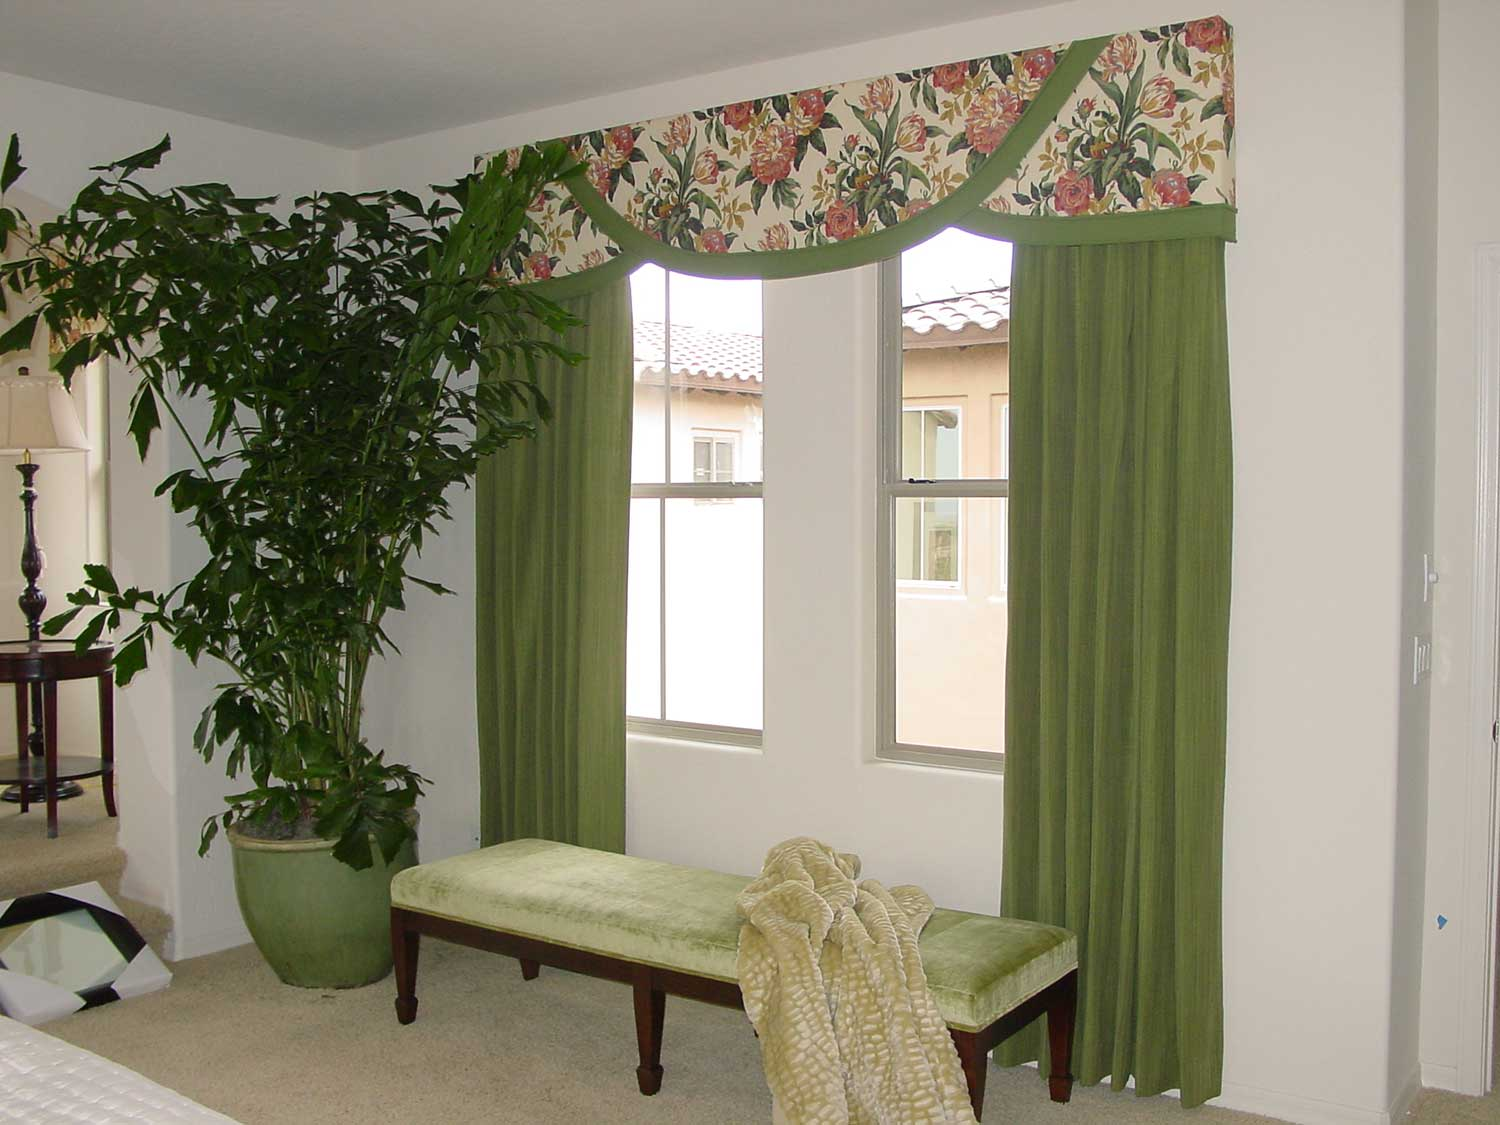 living room space with large curtains